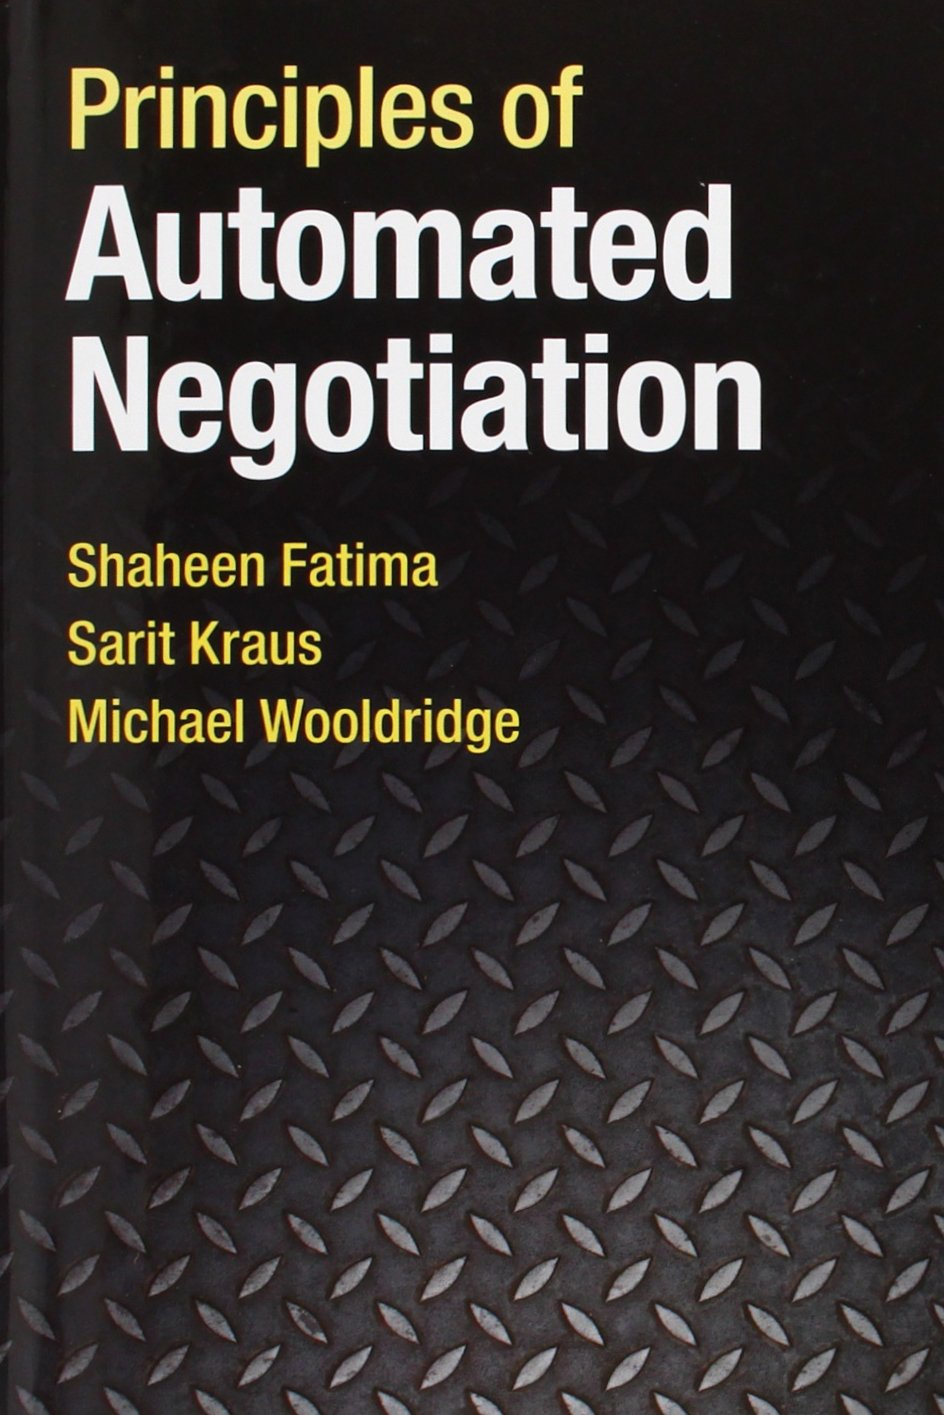 Principles of Automated Negotiation by Cambridge University Press